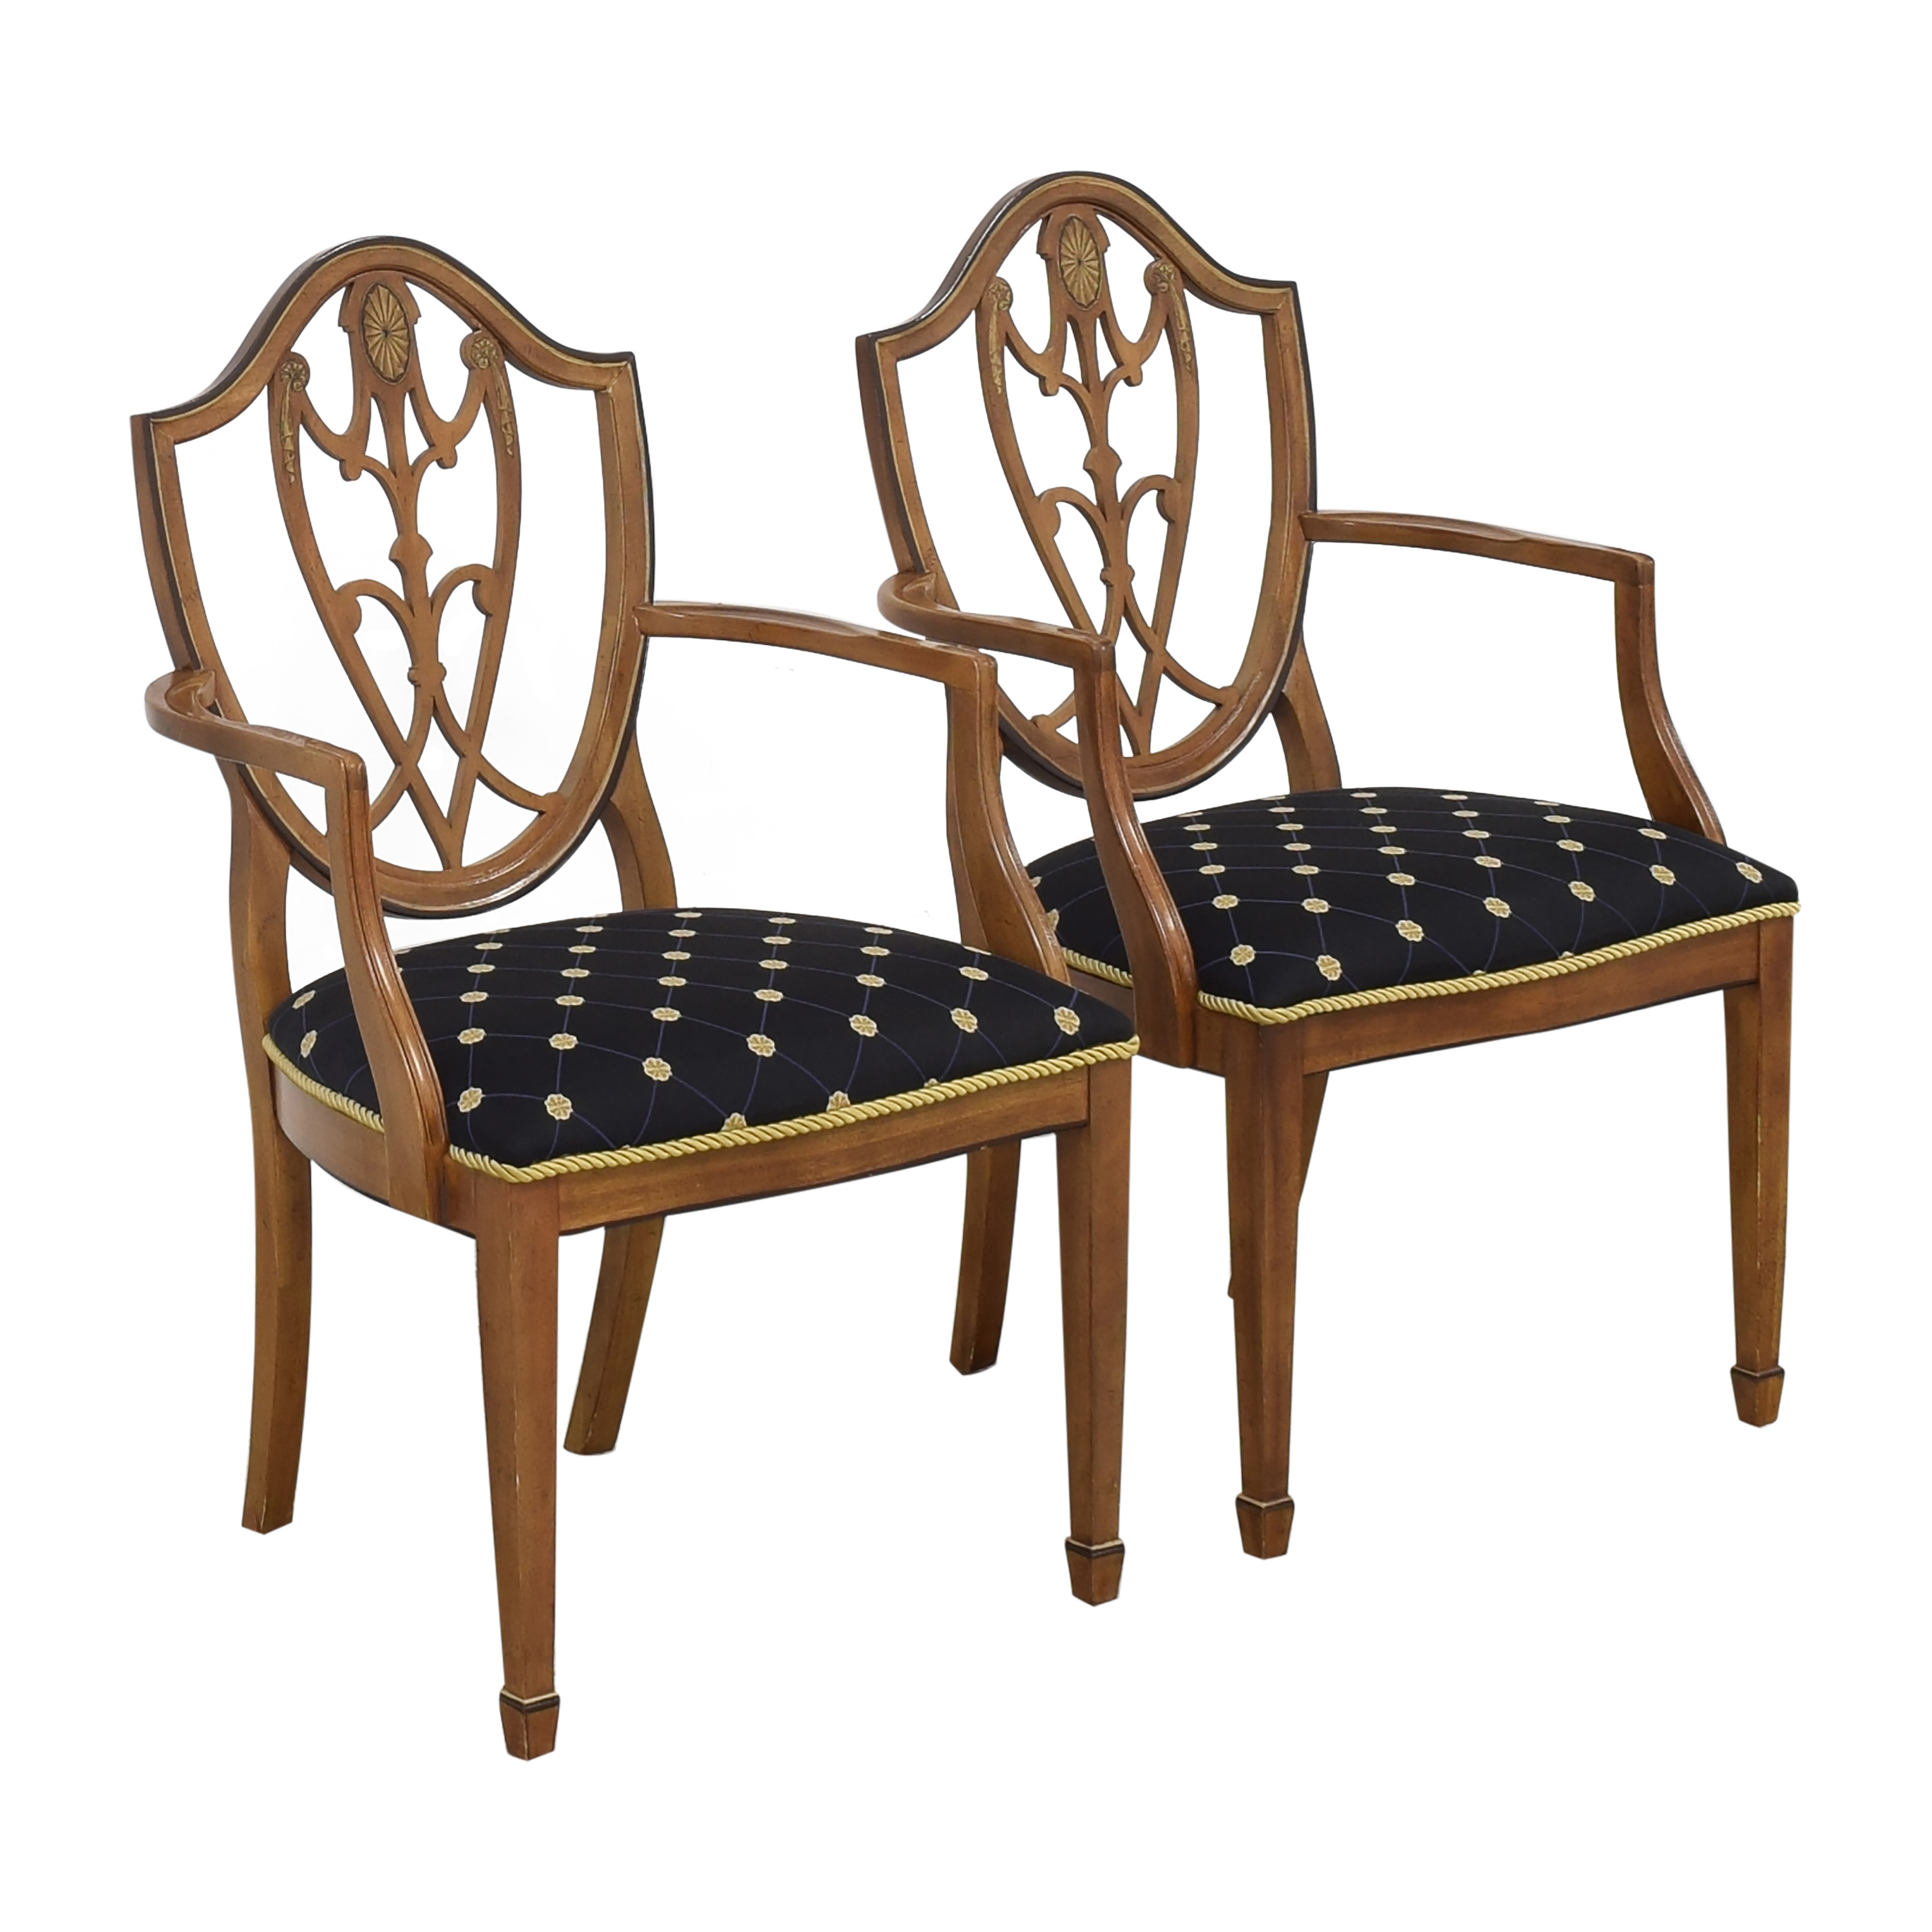 Drexel Drexel Upholstered Dining Arm Chairs Dining Chairs